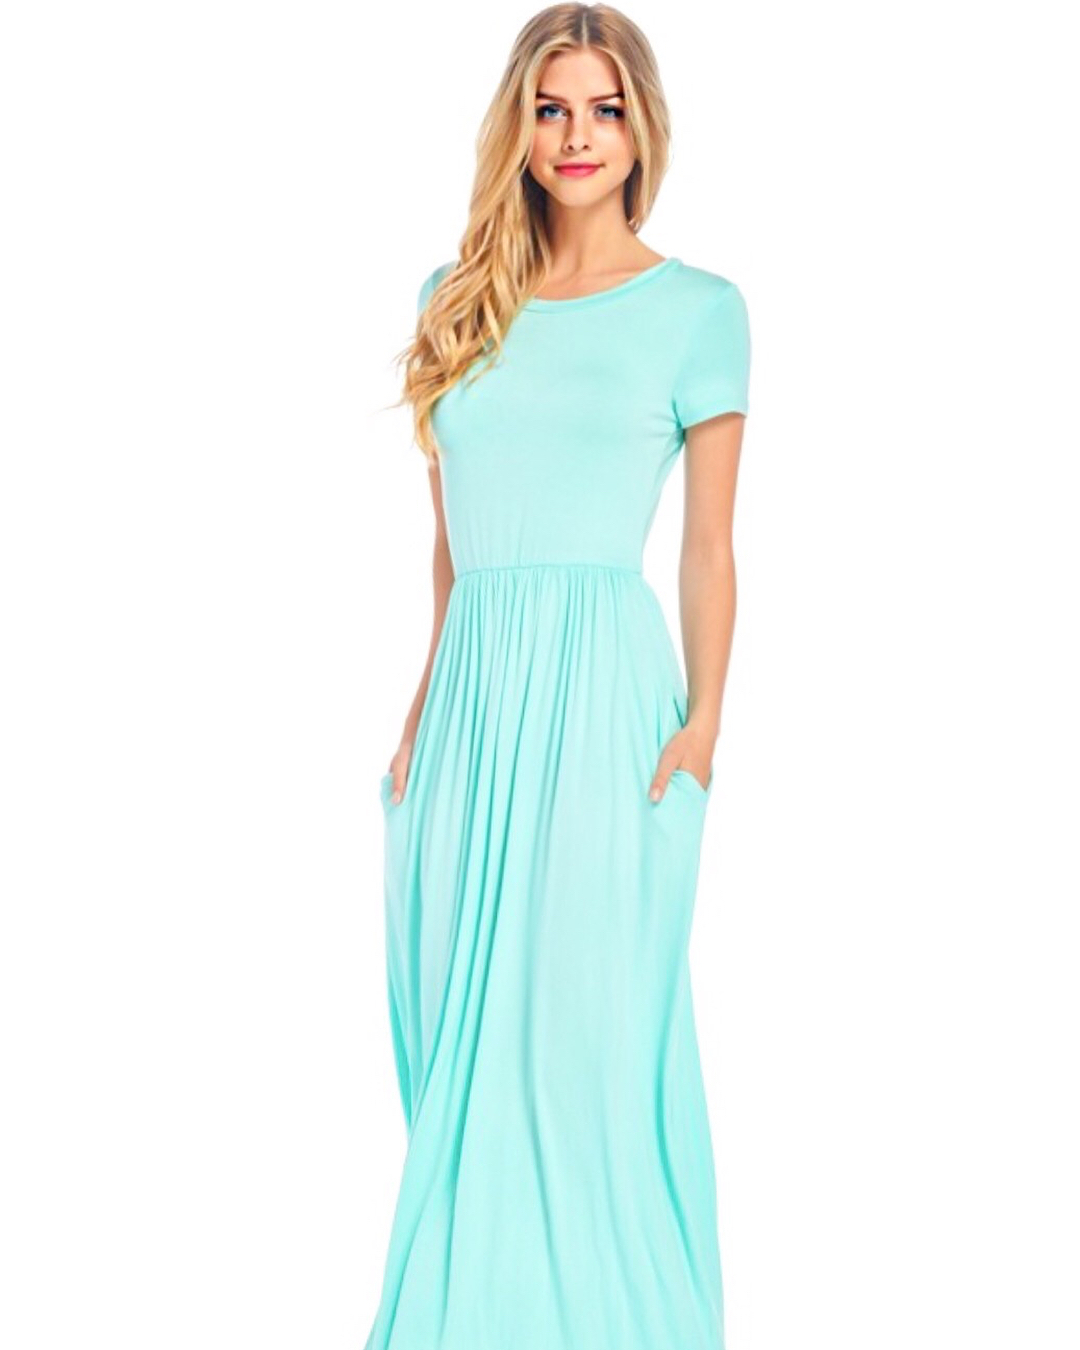 Long turquoise dress with pockets